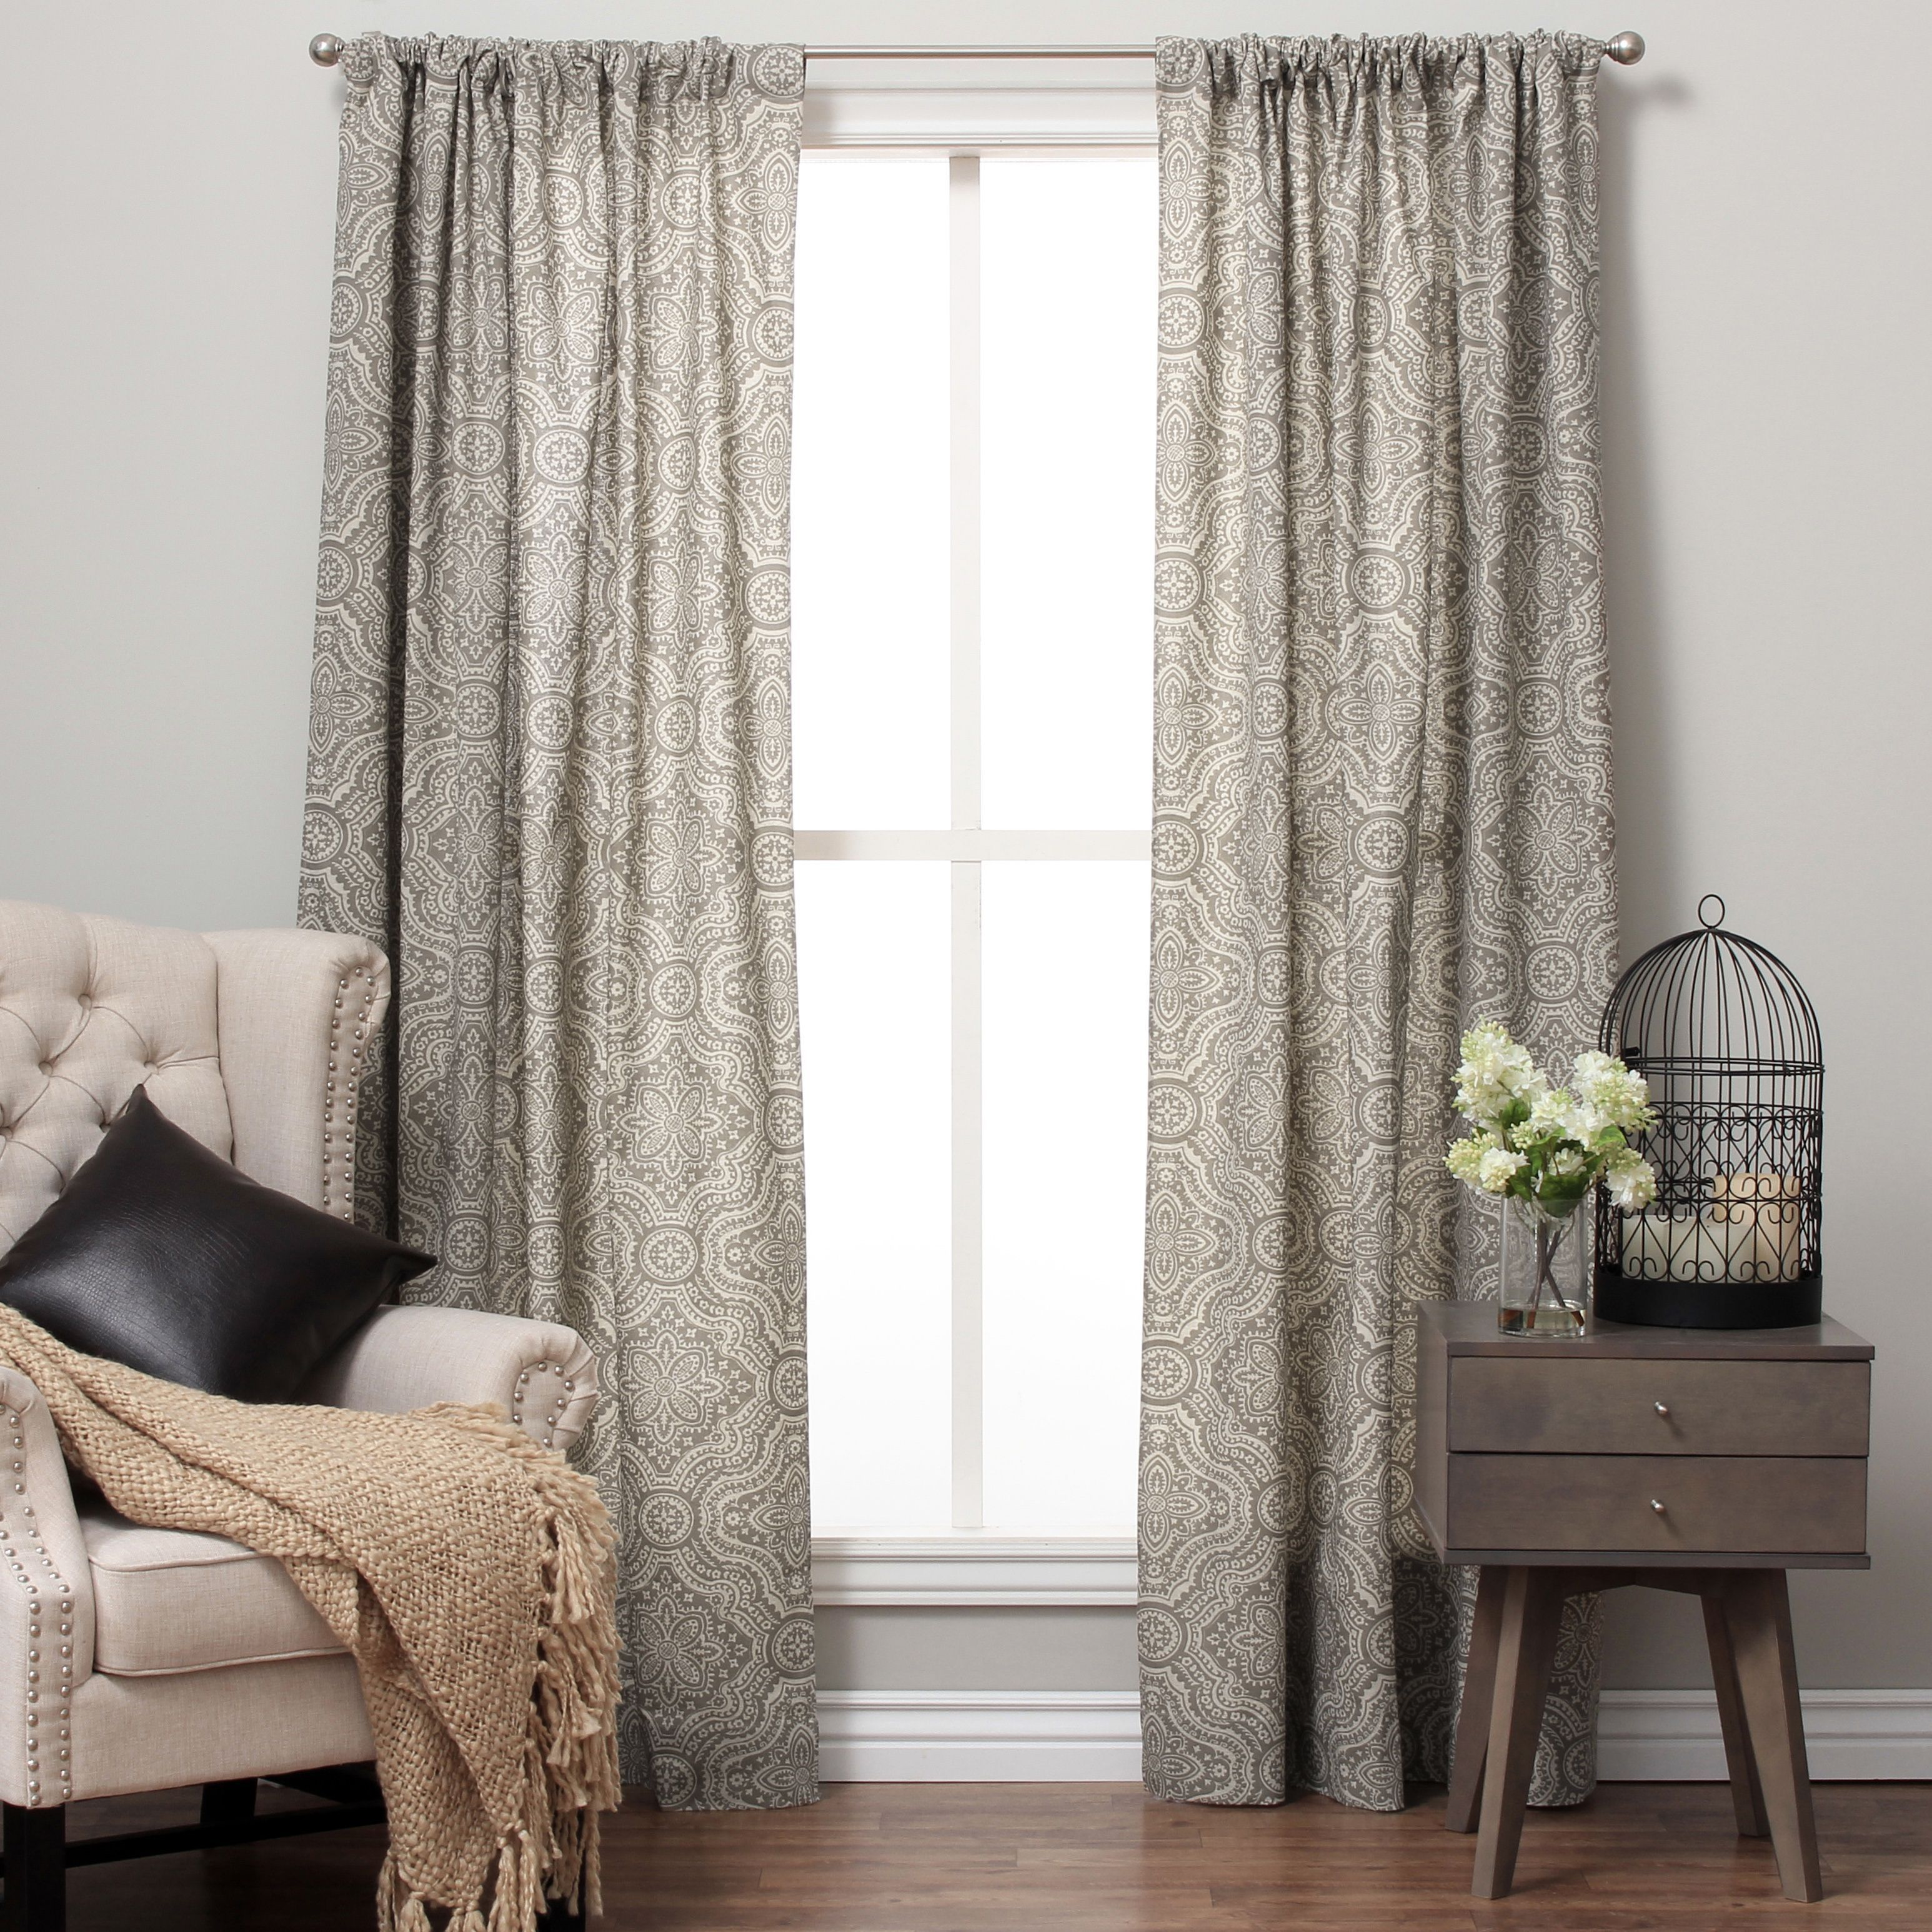 treatment pin exotic overview drapes lace victorian swatch window garland treatments details windows curtains sizes reviews styling and